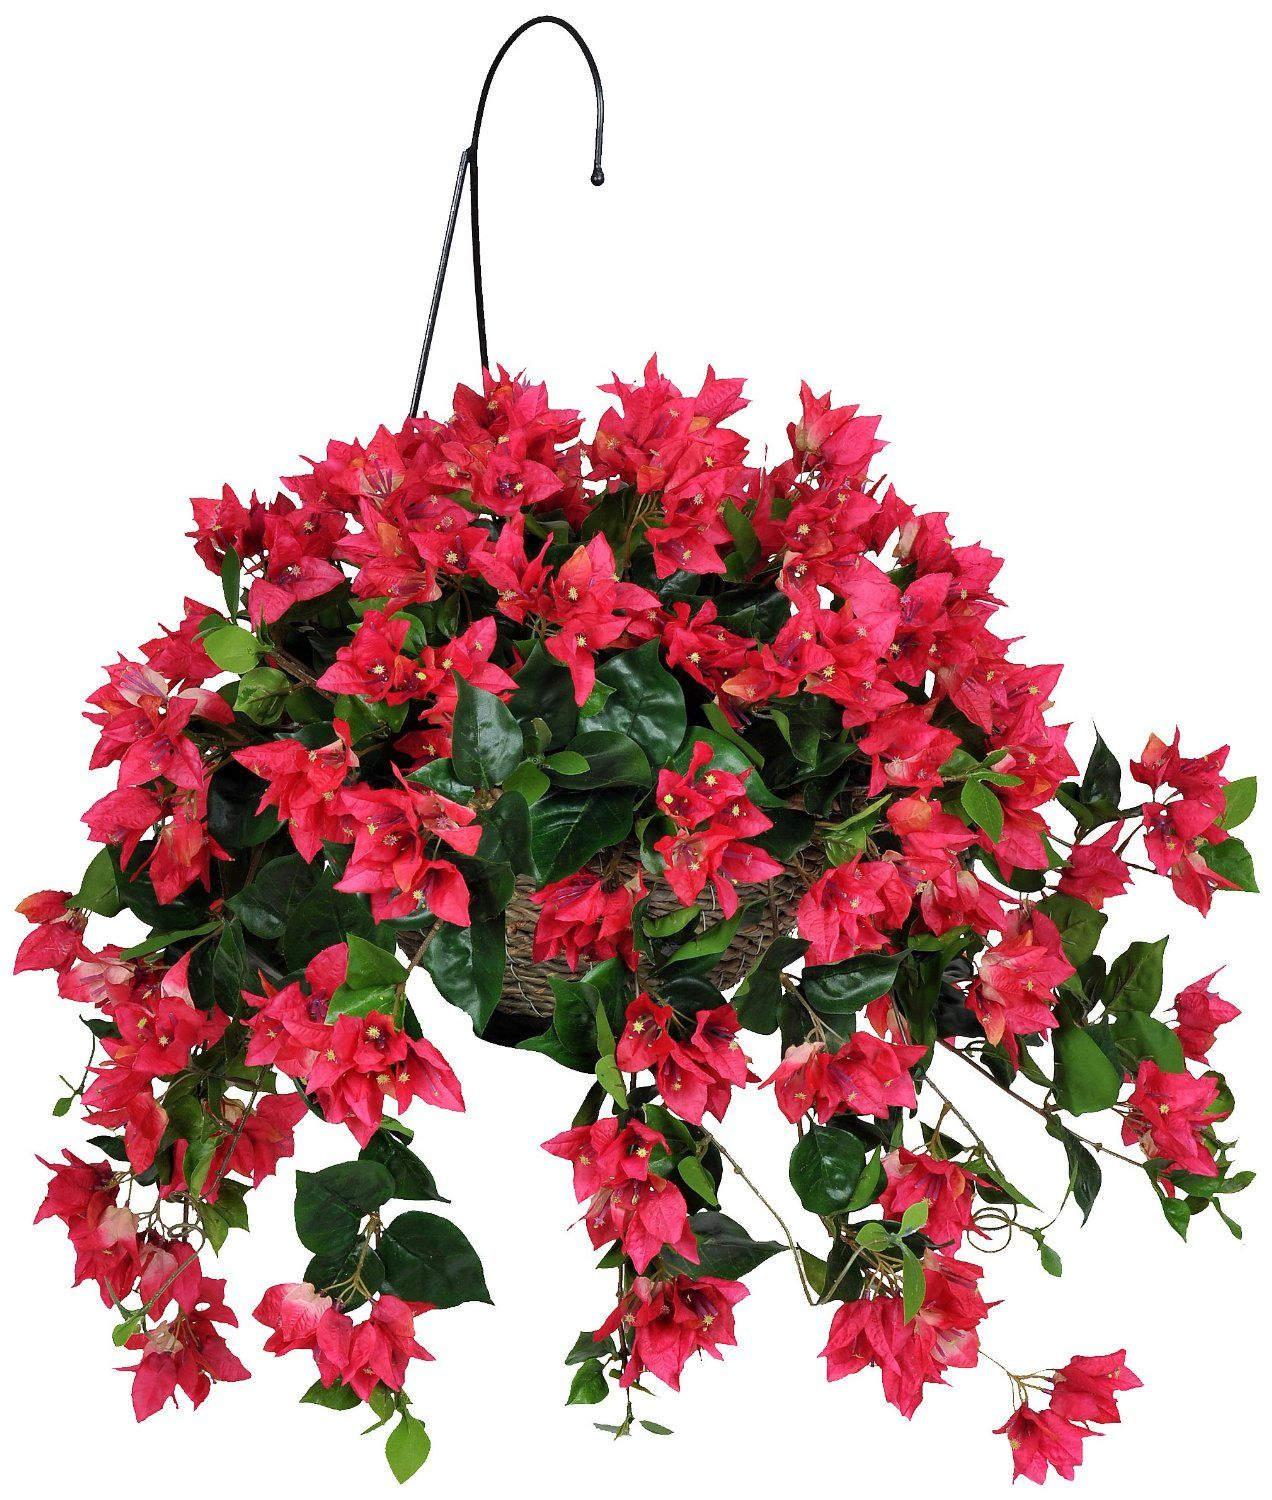 Amazon.com - House of Silk Flowers Artificial Watermelon Red ...